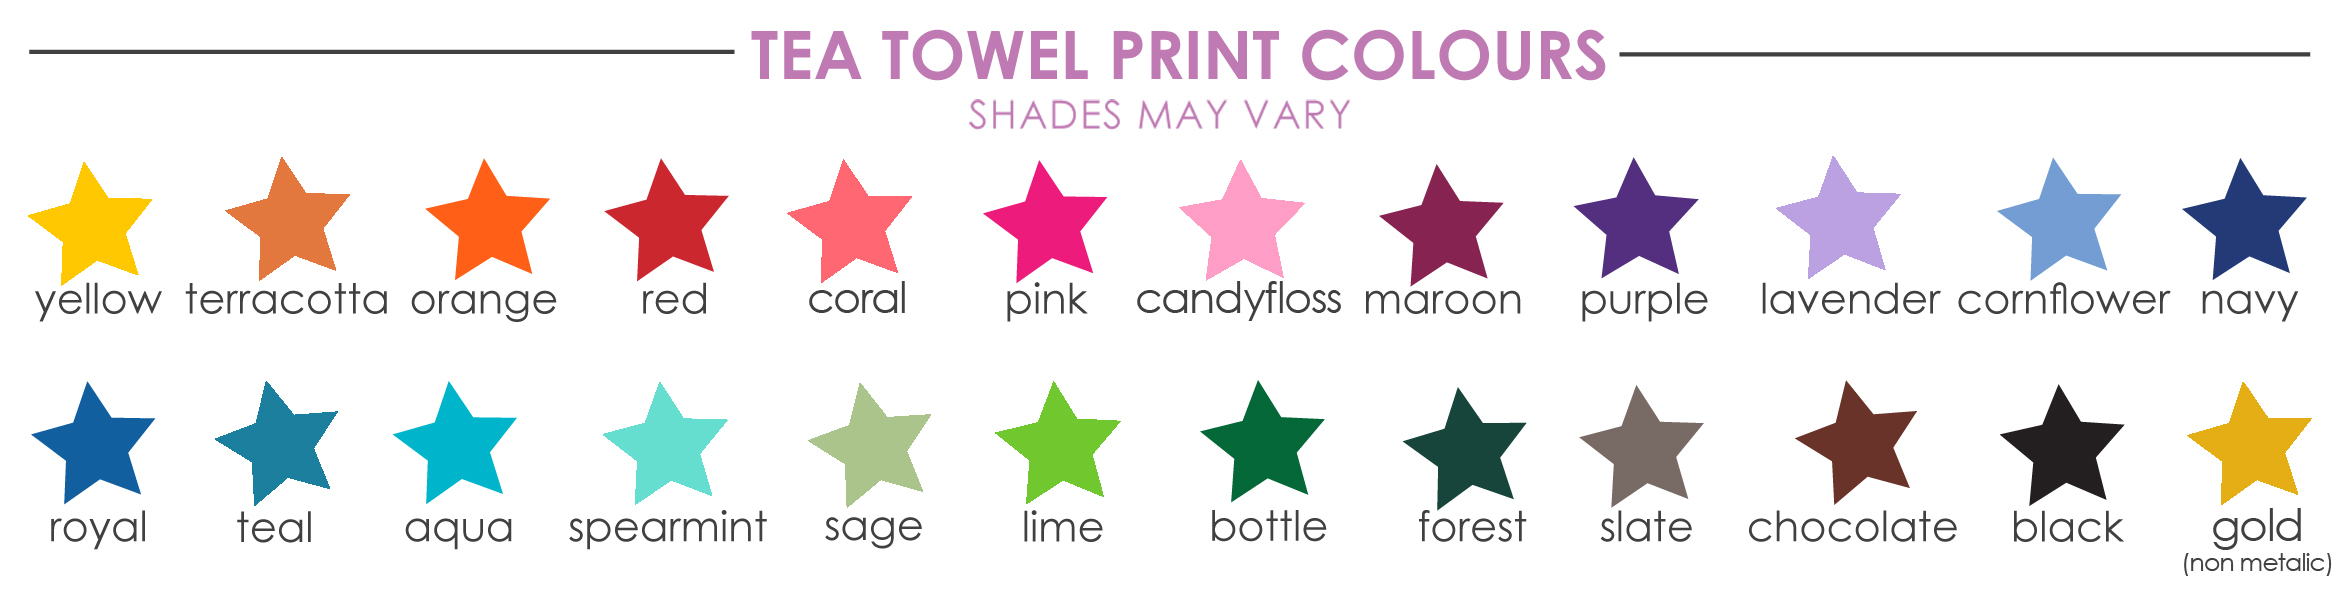 Tea Towel Print Colours